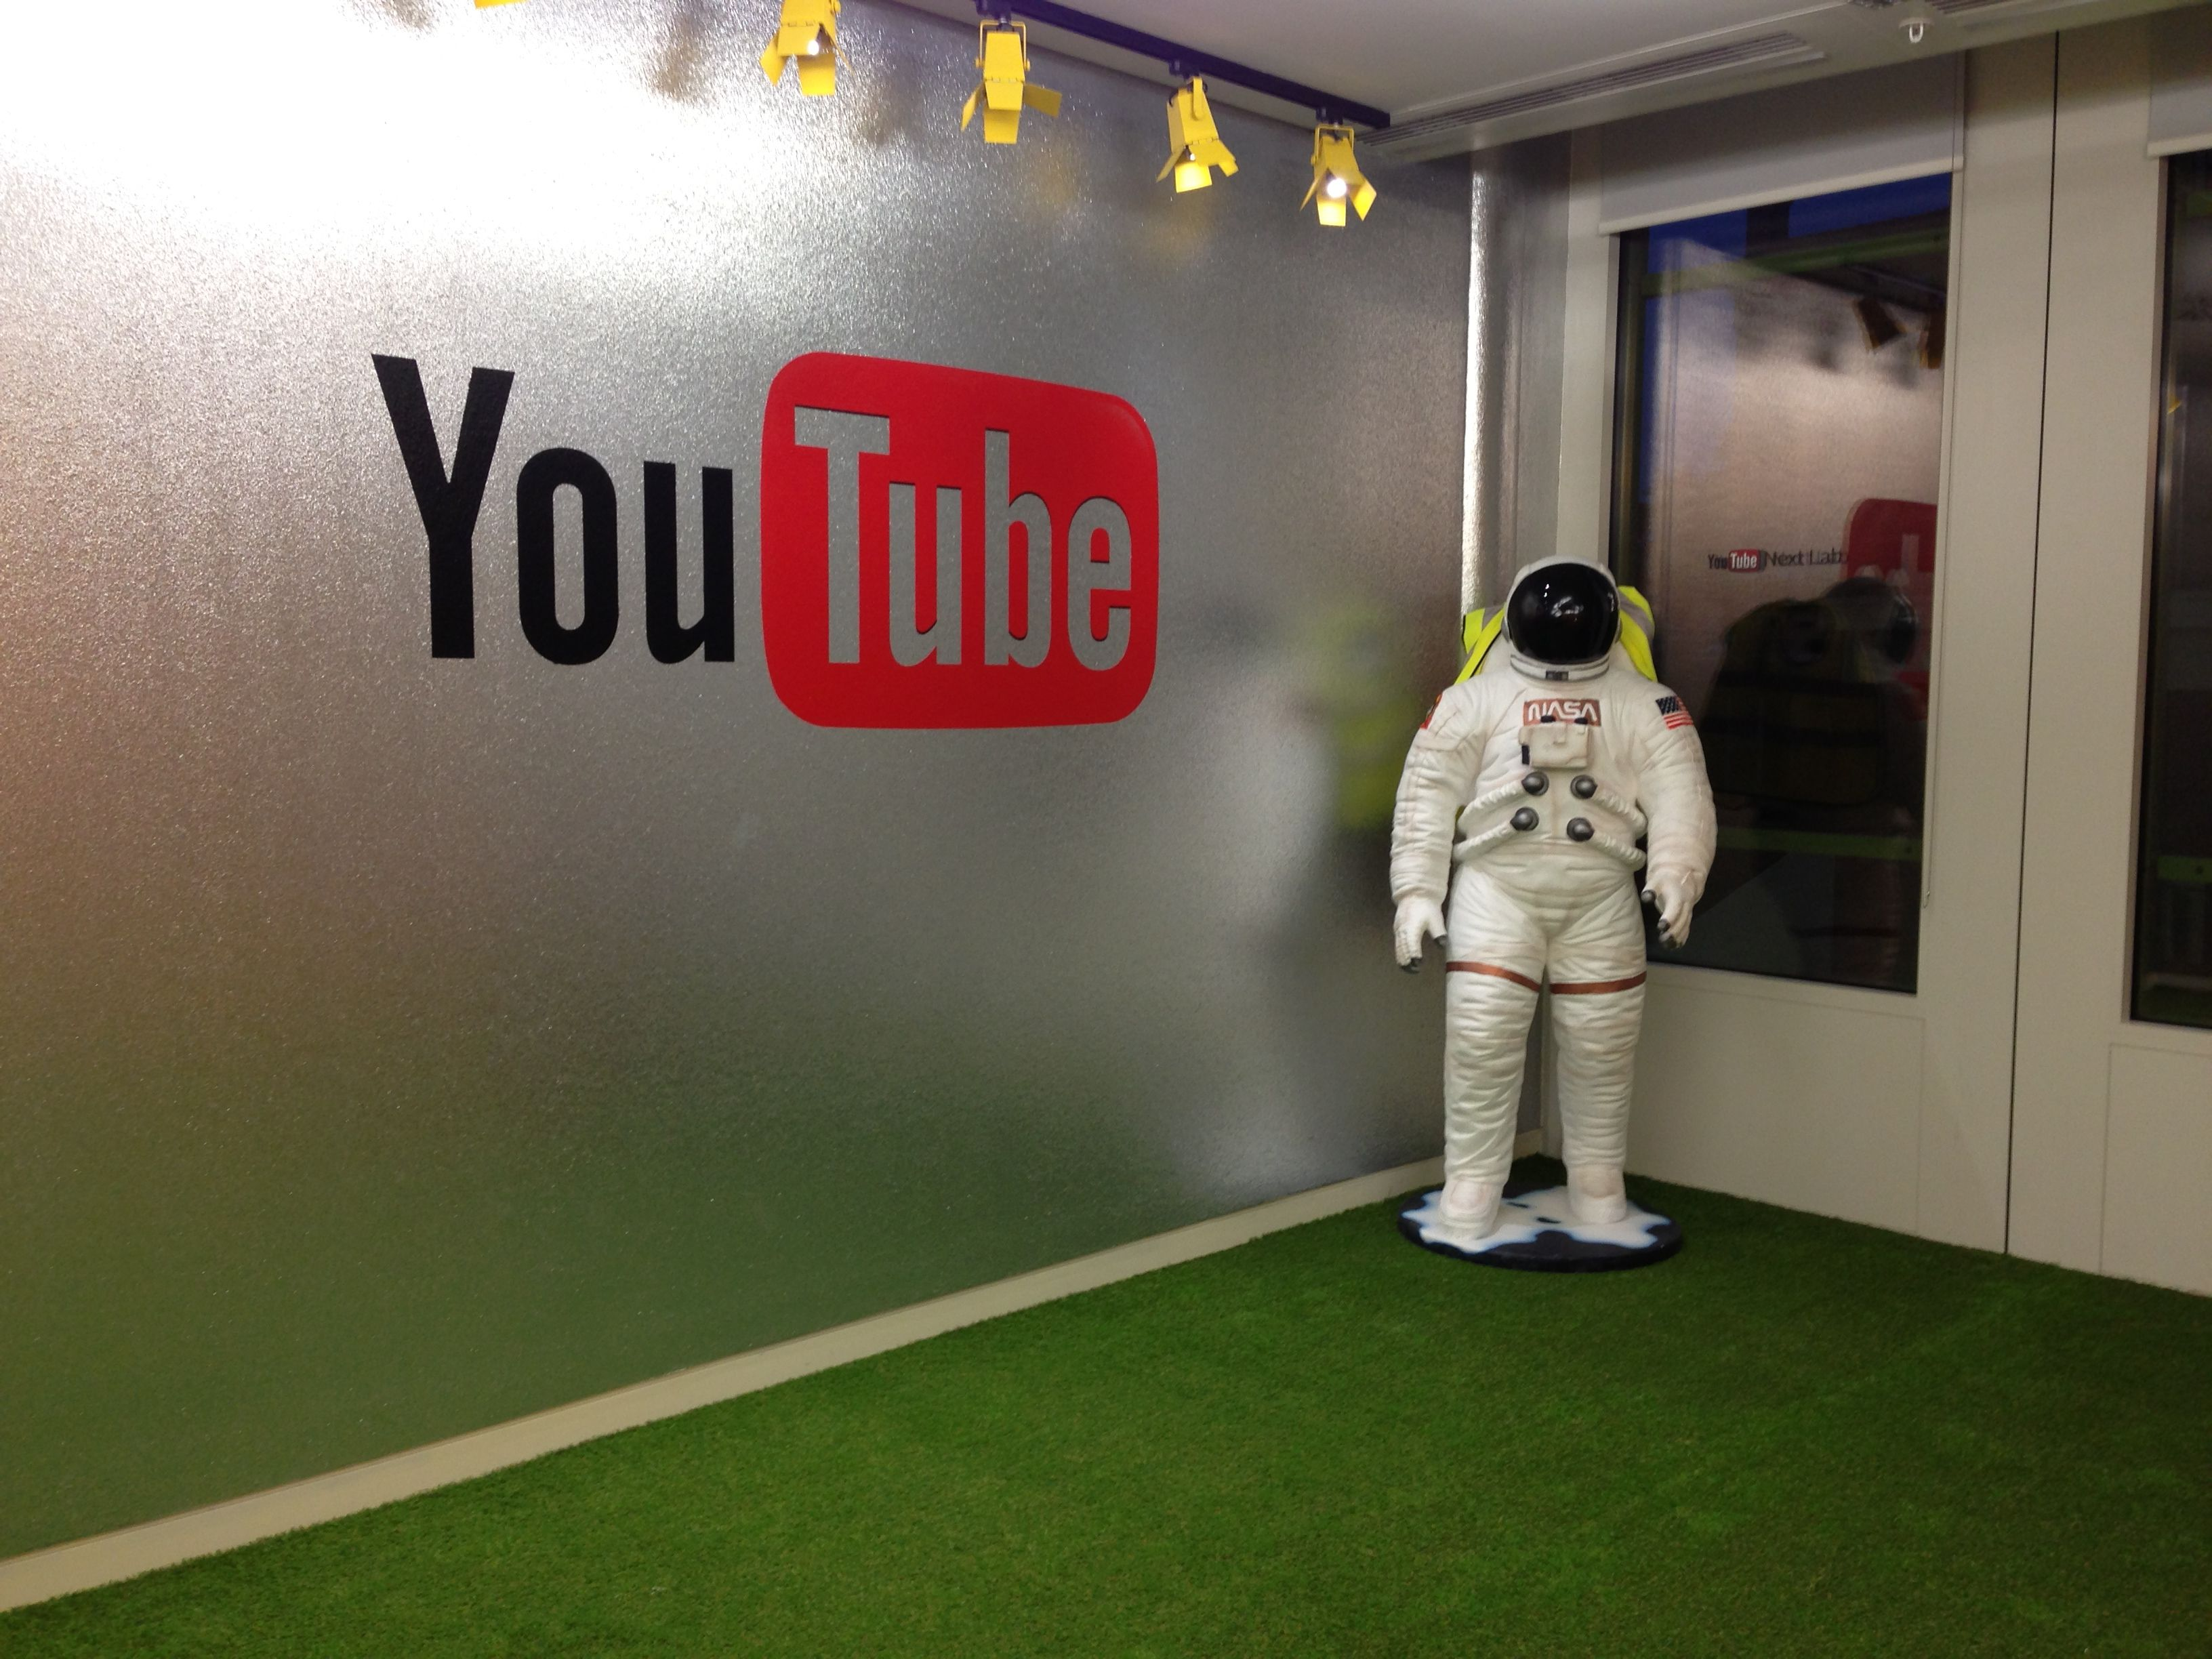 One small step for man, one giant leap for You Tube! - The YouTube offices kitted out with #LazyLawn #artificialgrass